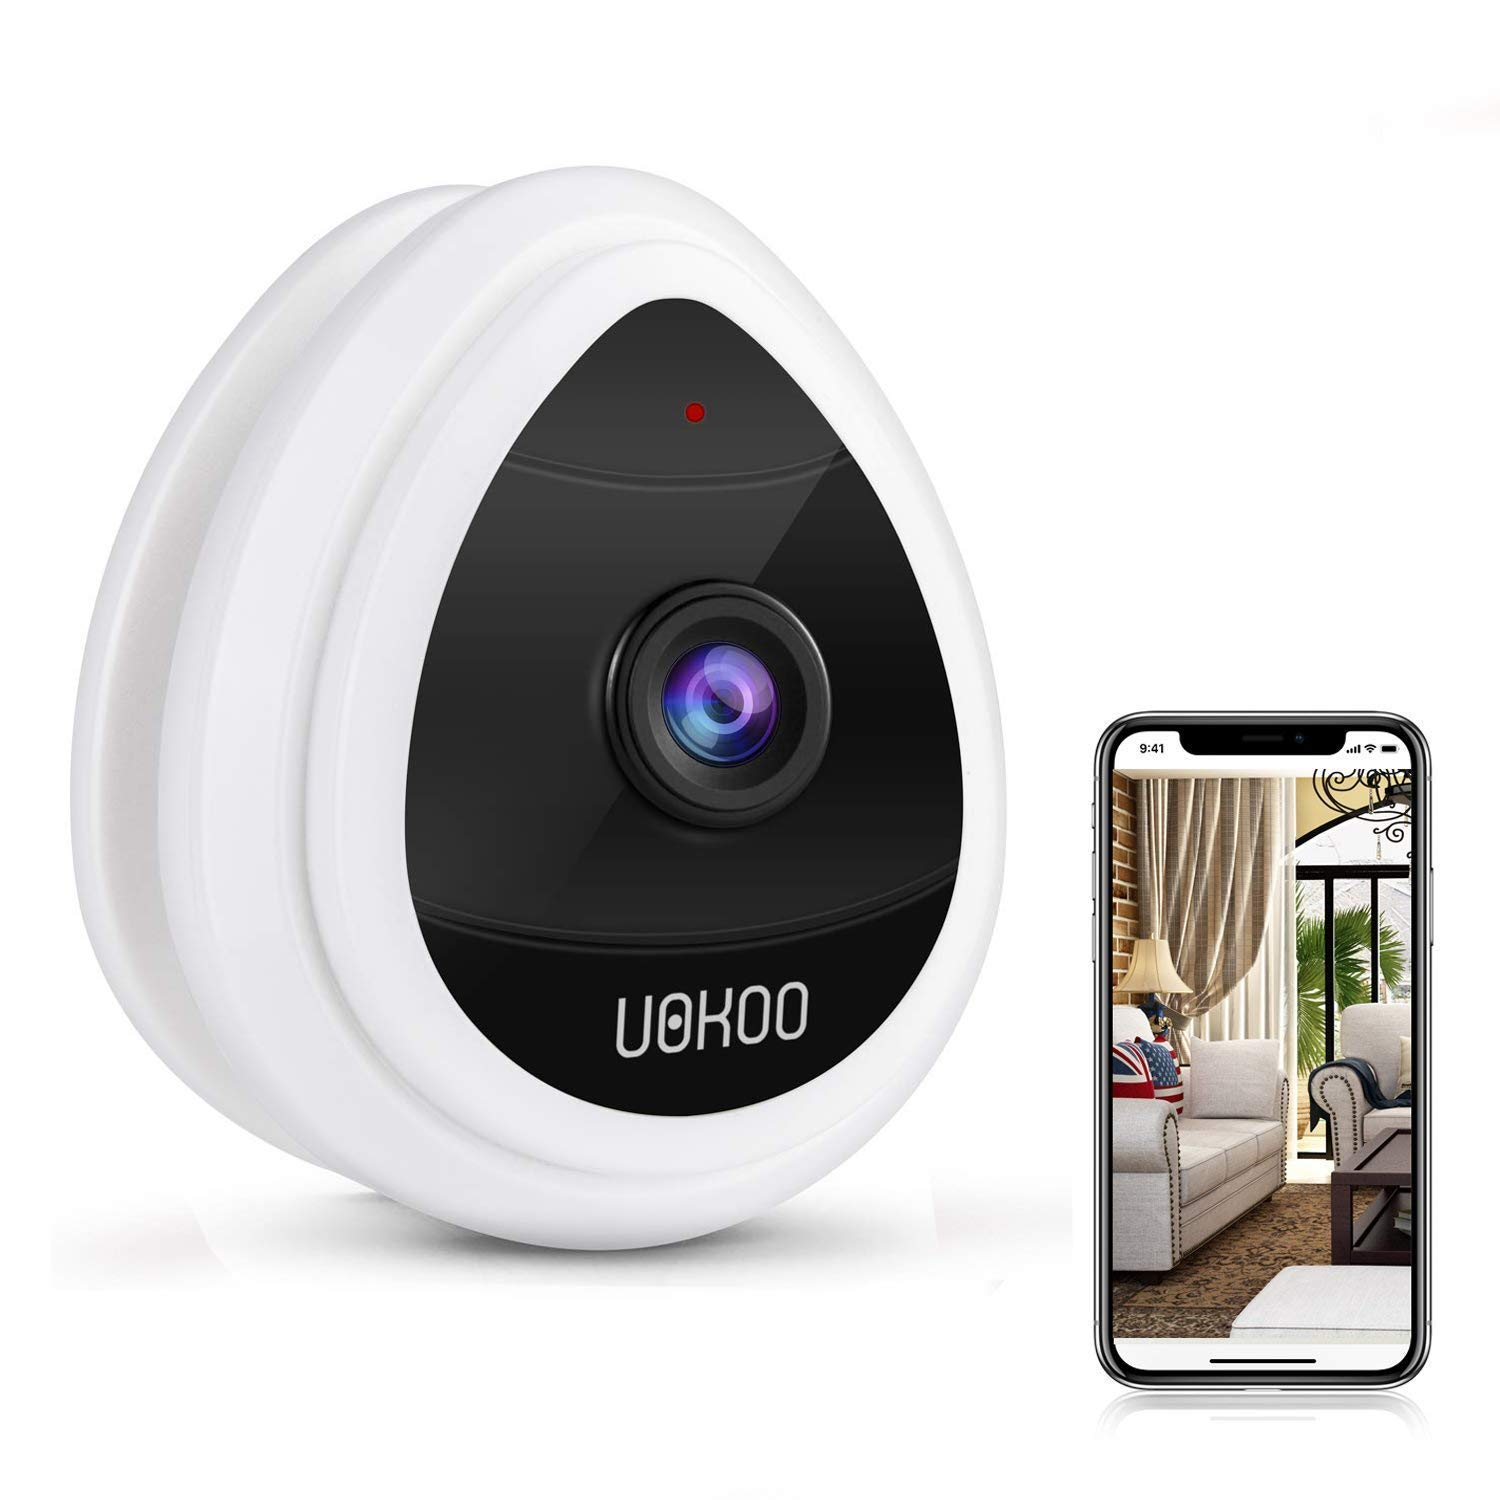 Security Camera Wi Fi Wireless Security Smart IP Camera Surveillance System Remote Monitoring with Motion Alert for Pet Baby Elder Pet Monitor Nanny Cam